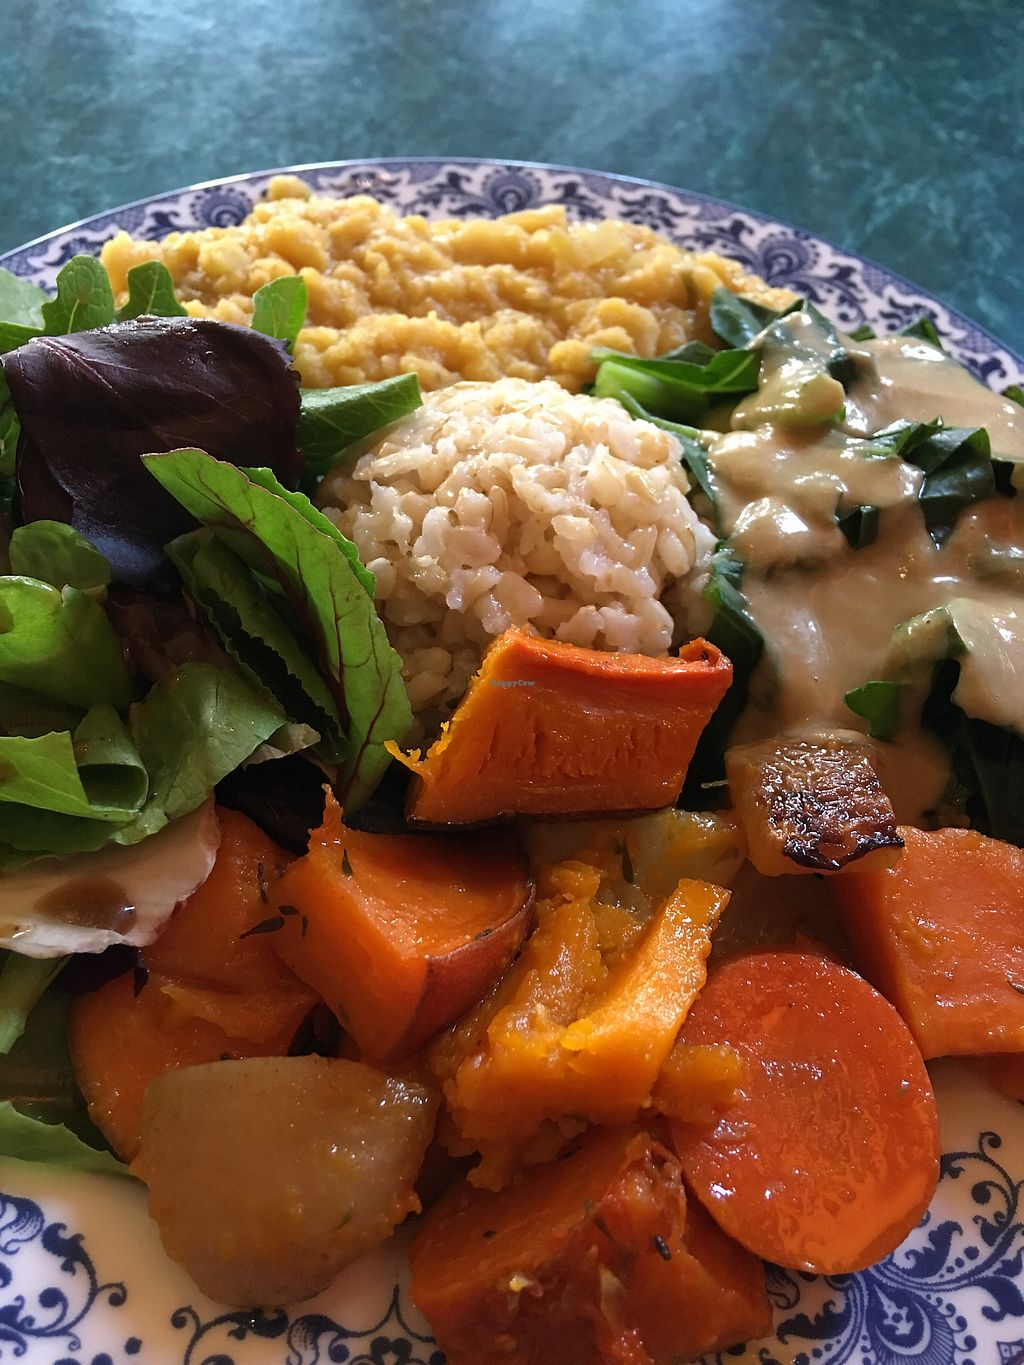 """Photo of Potala Organic Cafe  by <a href=""""/members/profile/dvcucsc"""">dvcucsc</a> <br/>This is the size of the medium plate.  Includes soup too <br/> January 1, 2018  - <a href='/contact/abuse/image/29240/341799'>Report</a>"""